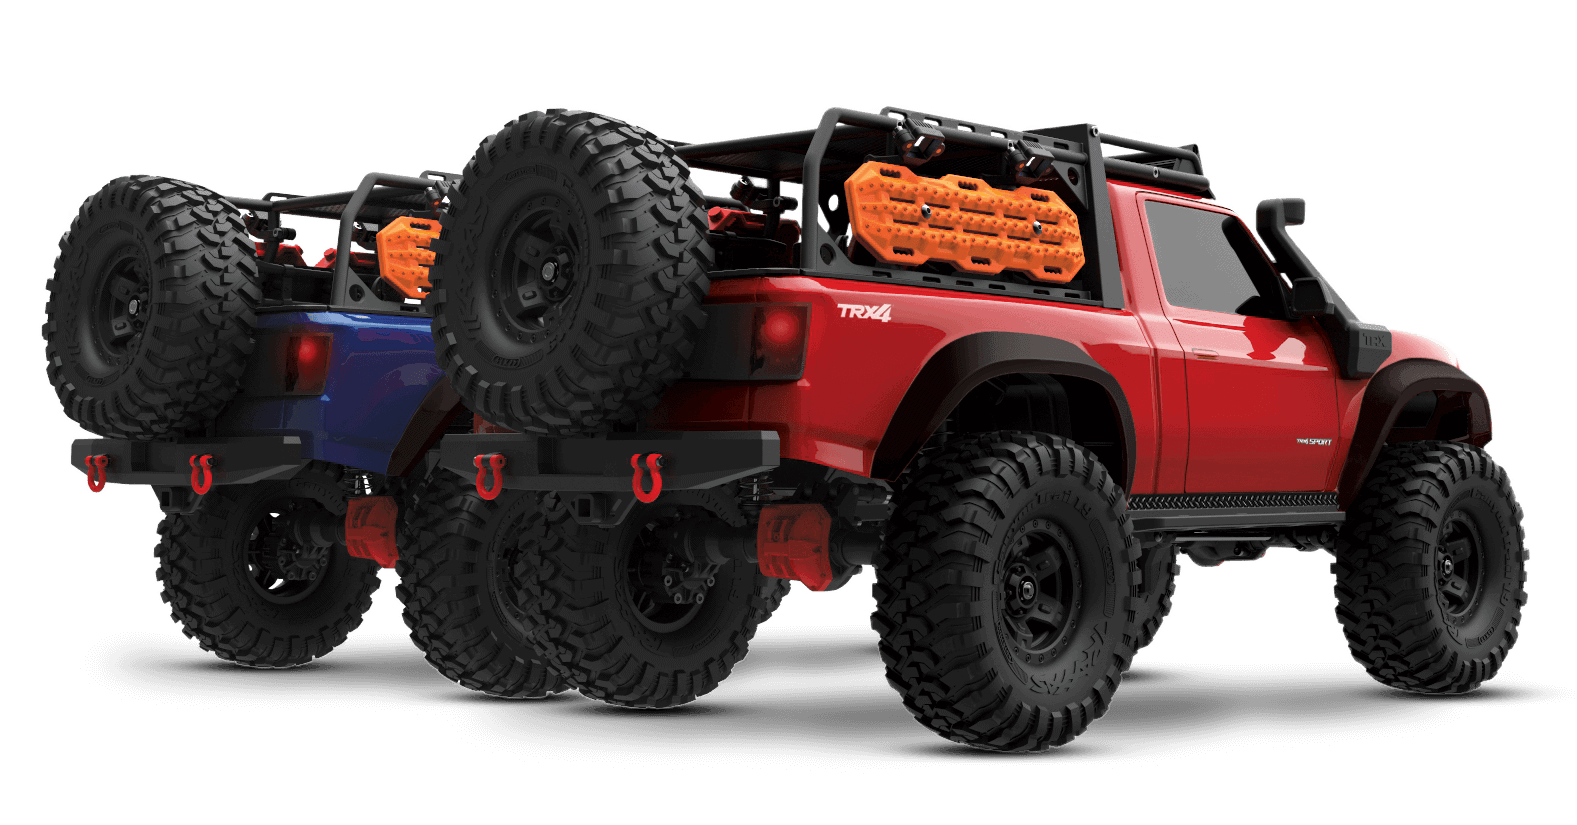 Upcoming Traxxas TRX-4 Sport Accessories